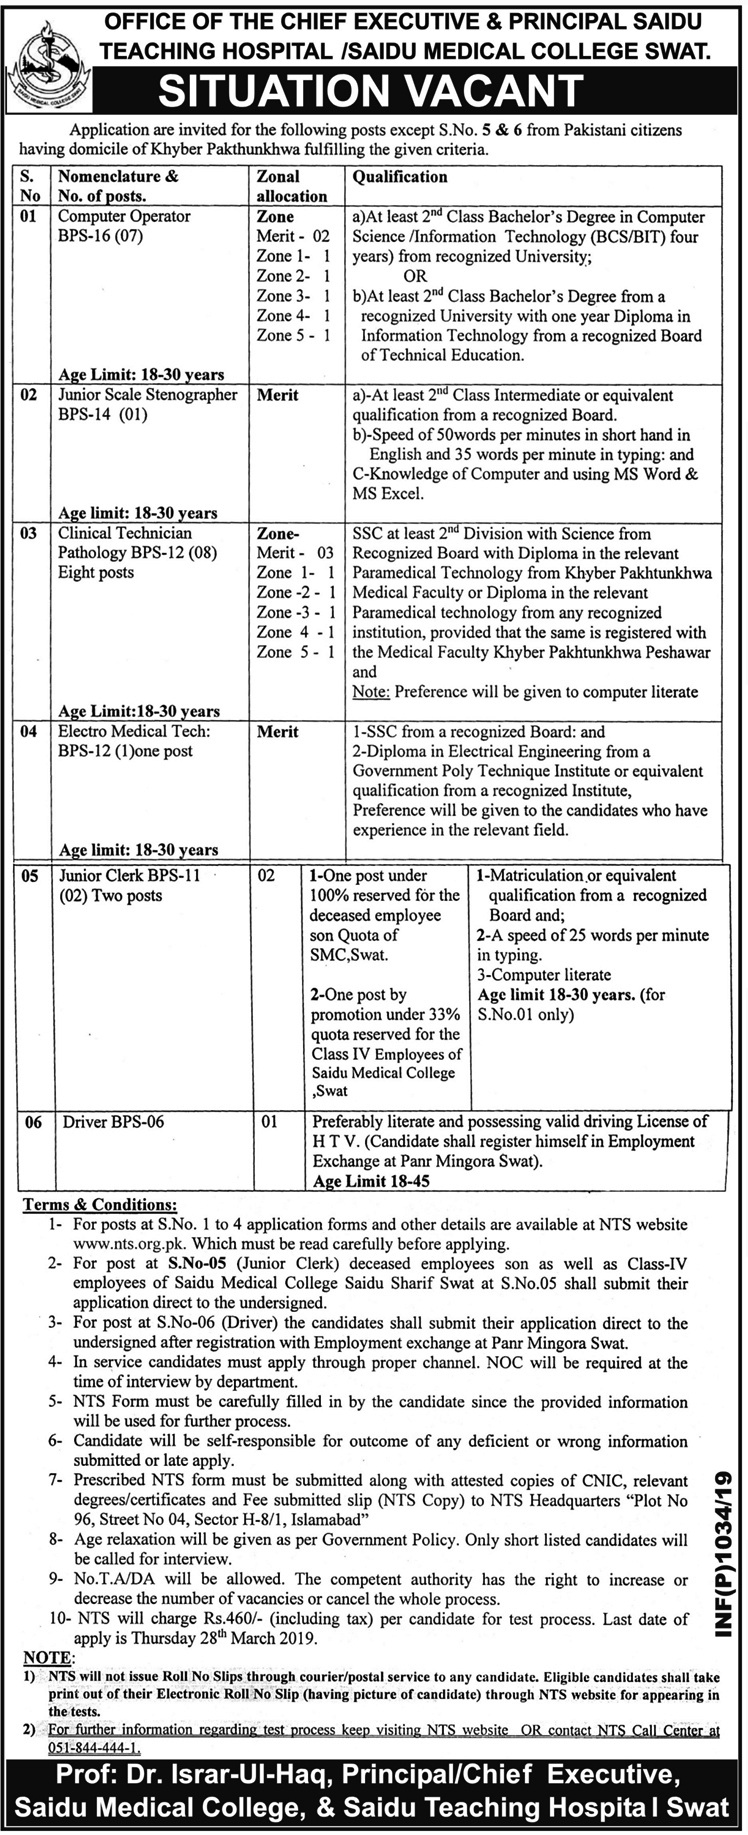 Teaching Hospital and Medical College Saidu Sharif Swat Jobs 2019 NTS Test Application Form List of Candidates